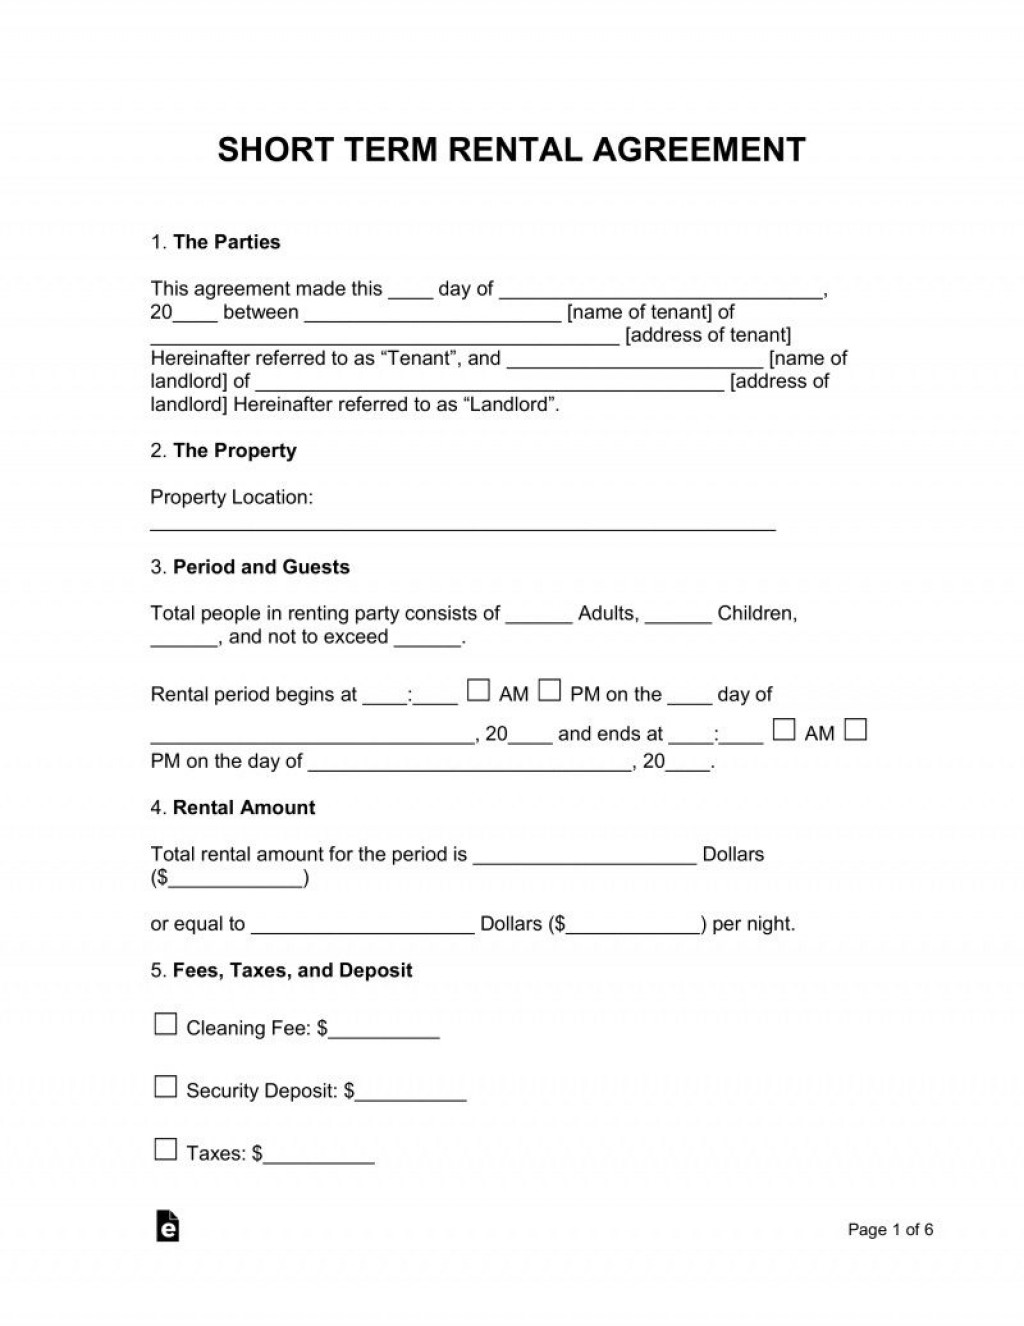 007 Sensational Renter Lease Agreement Template Highest Quality  Apartment Form Early Termination Of By Tenant South Africa FreeLarge